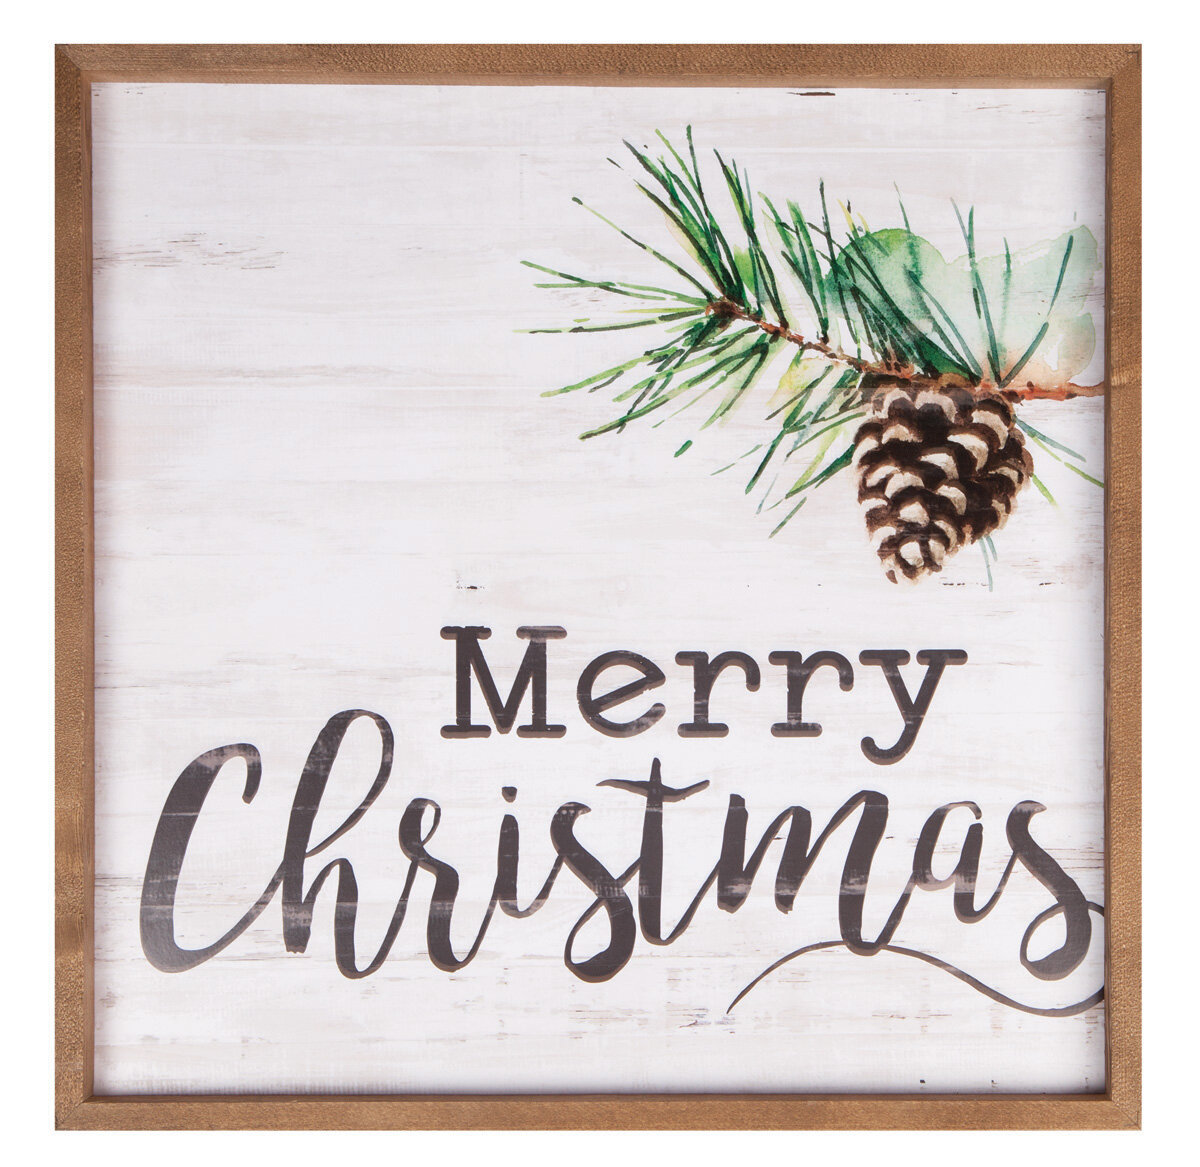 Merry Christmas\' Framed Textual Art on Wood | Birch Lane